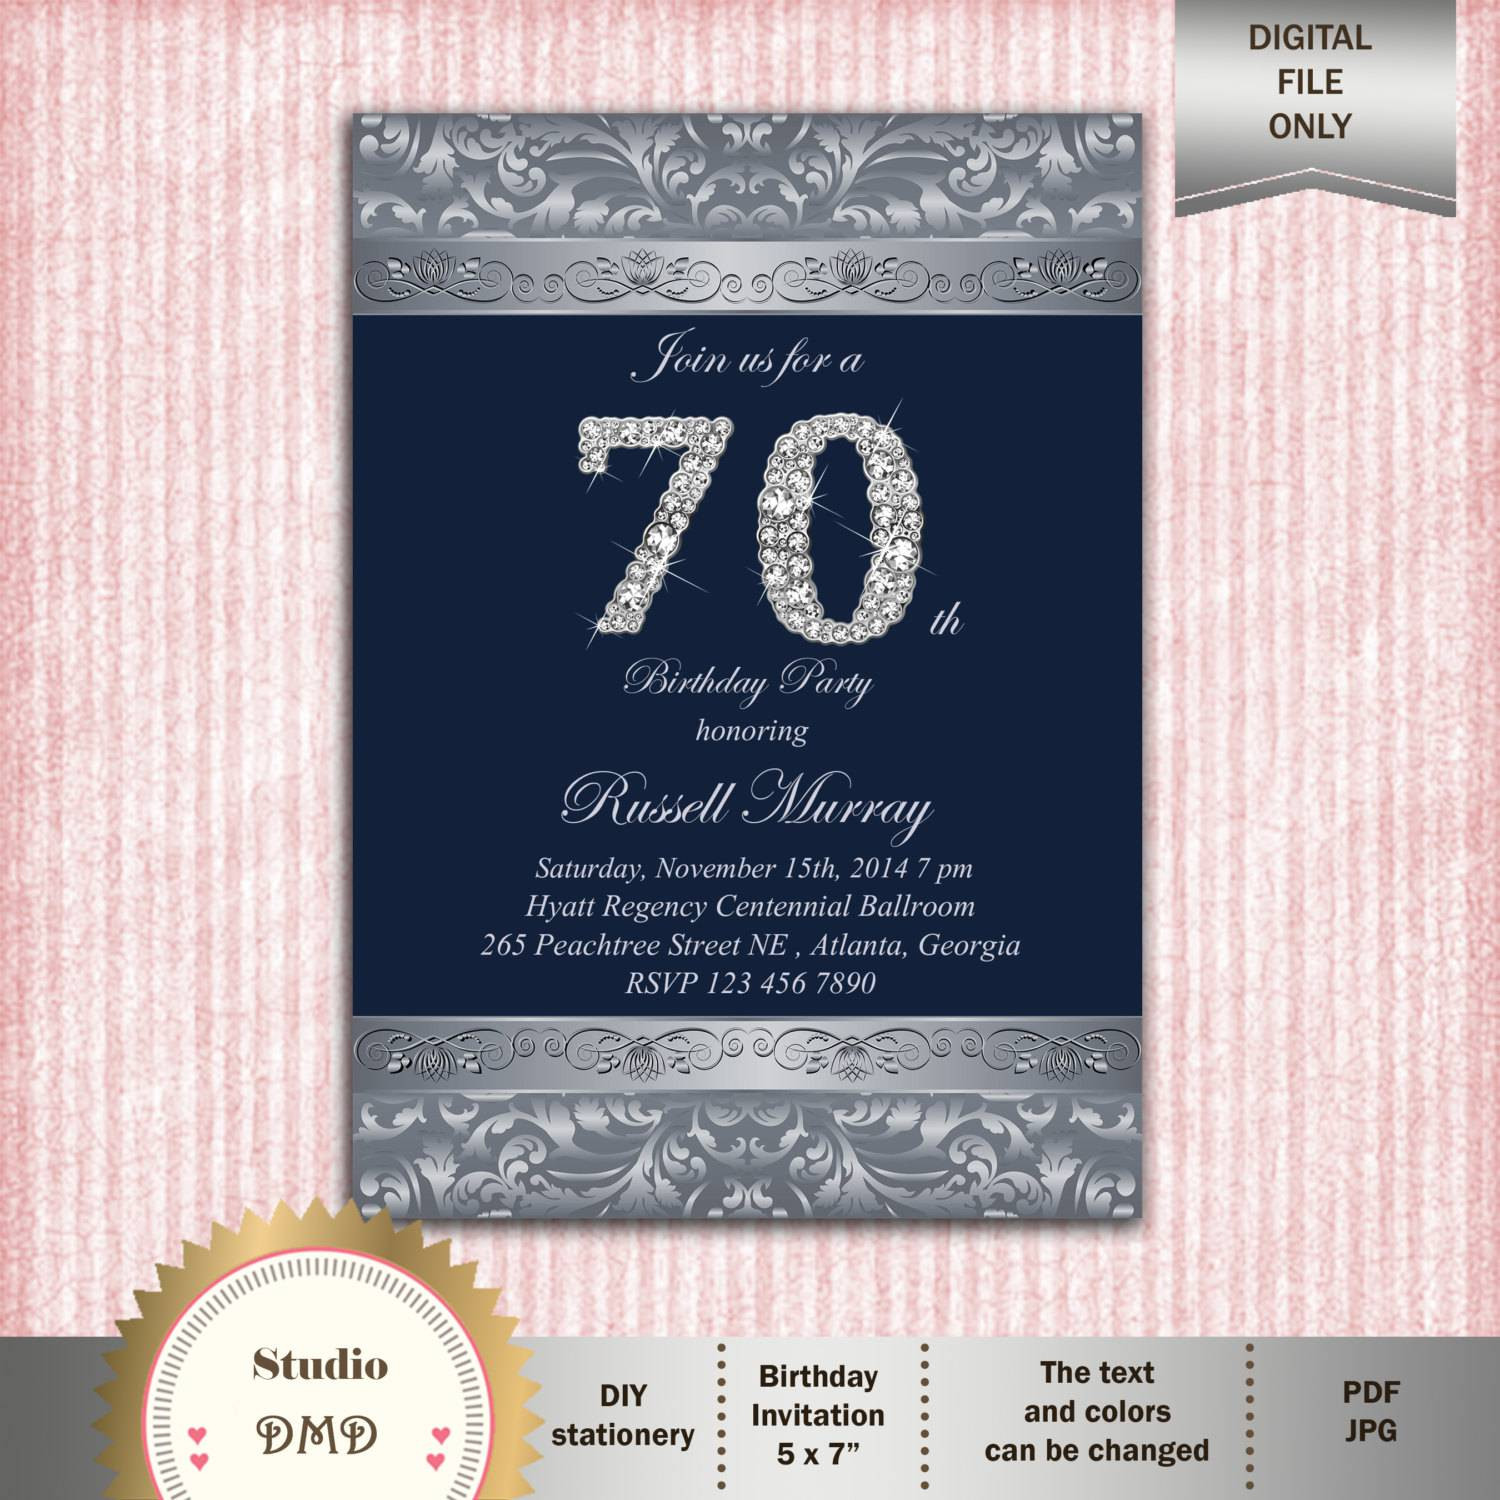 Best ideas about 70 Birthday Invitations . Save or Pin 70th Birthday Party Invitations Now.